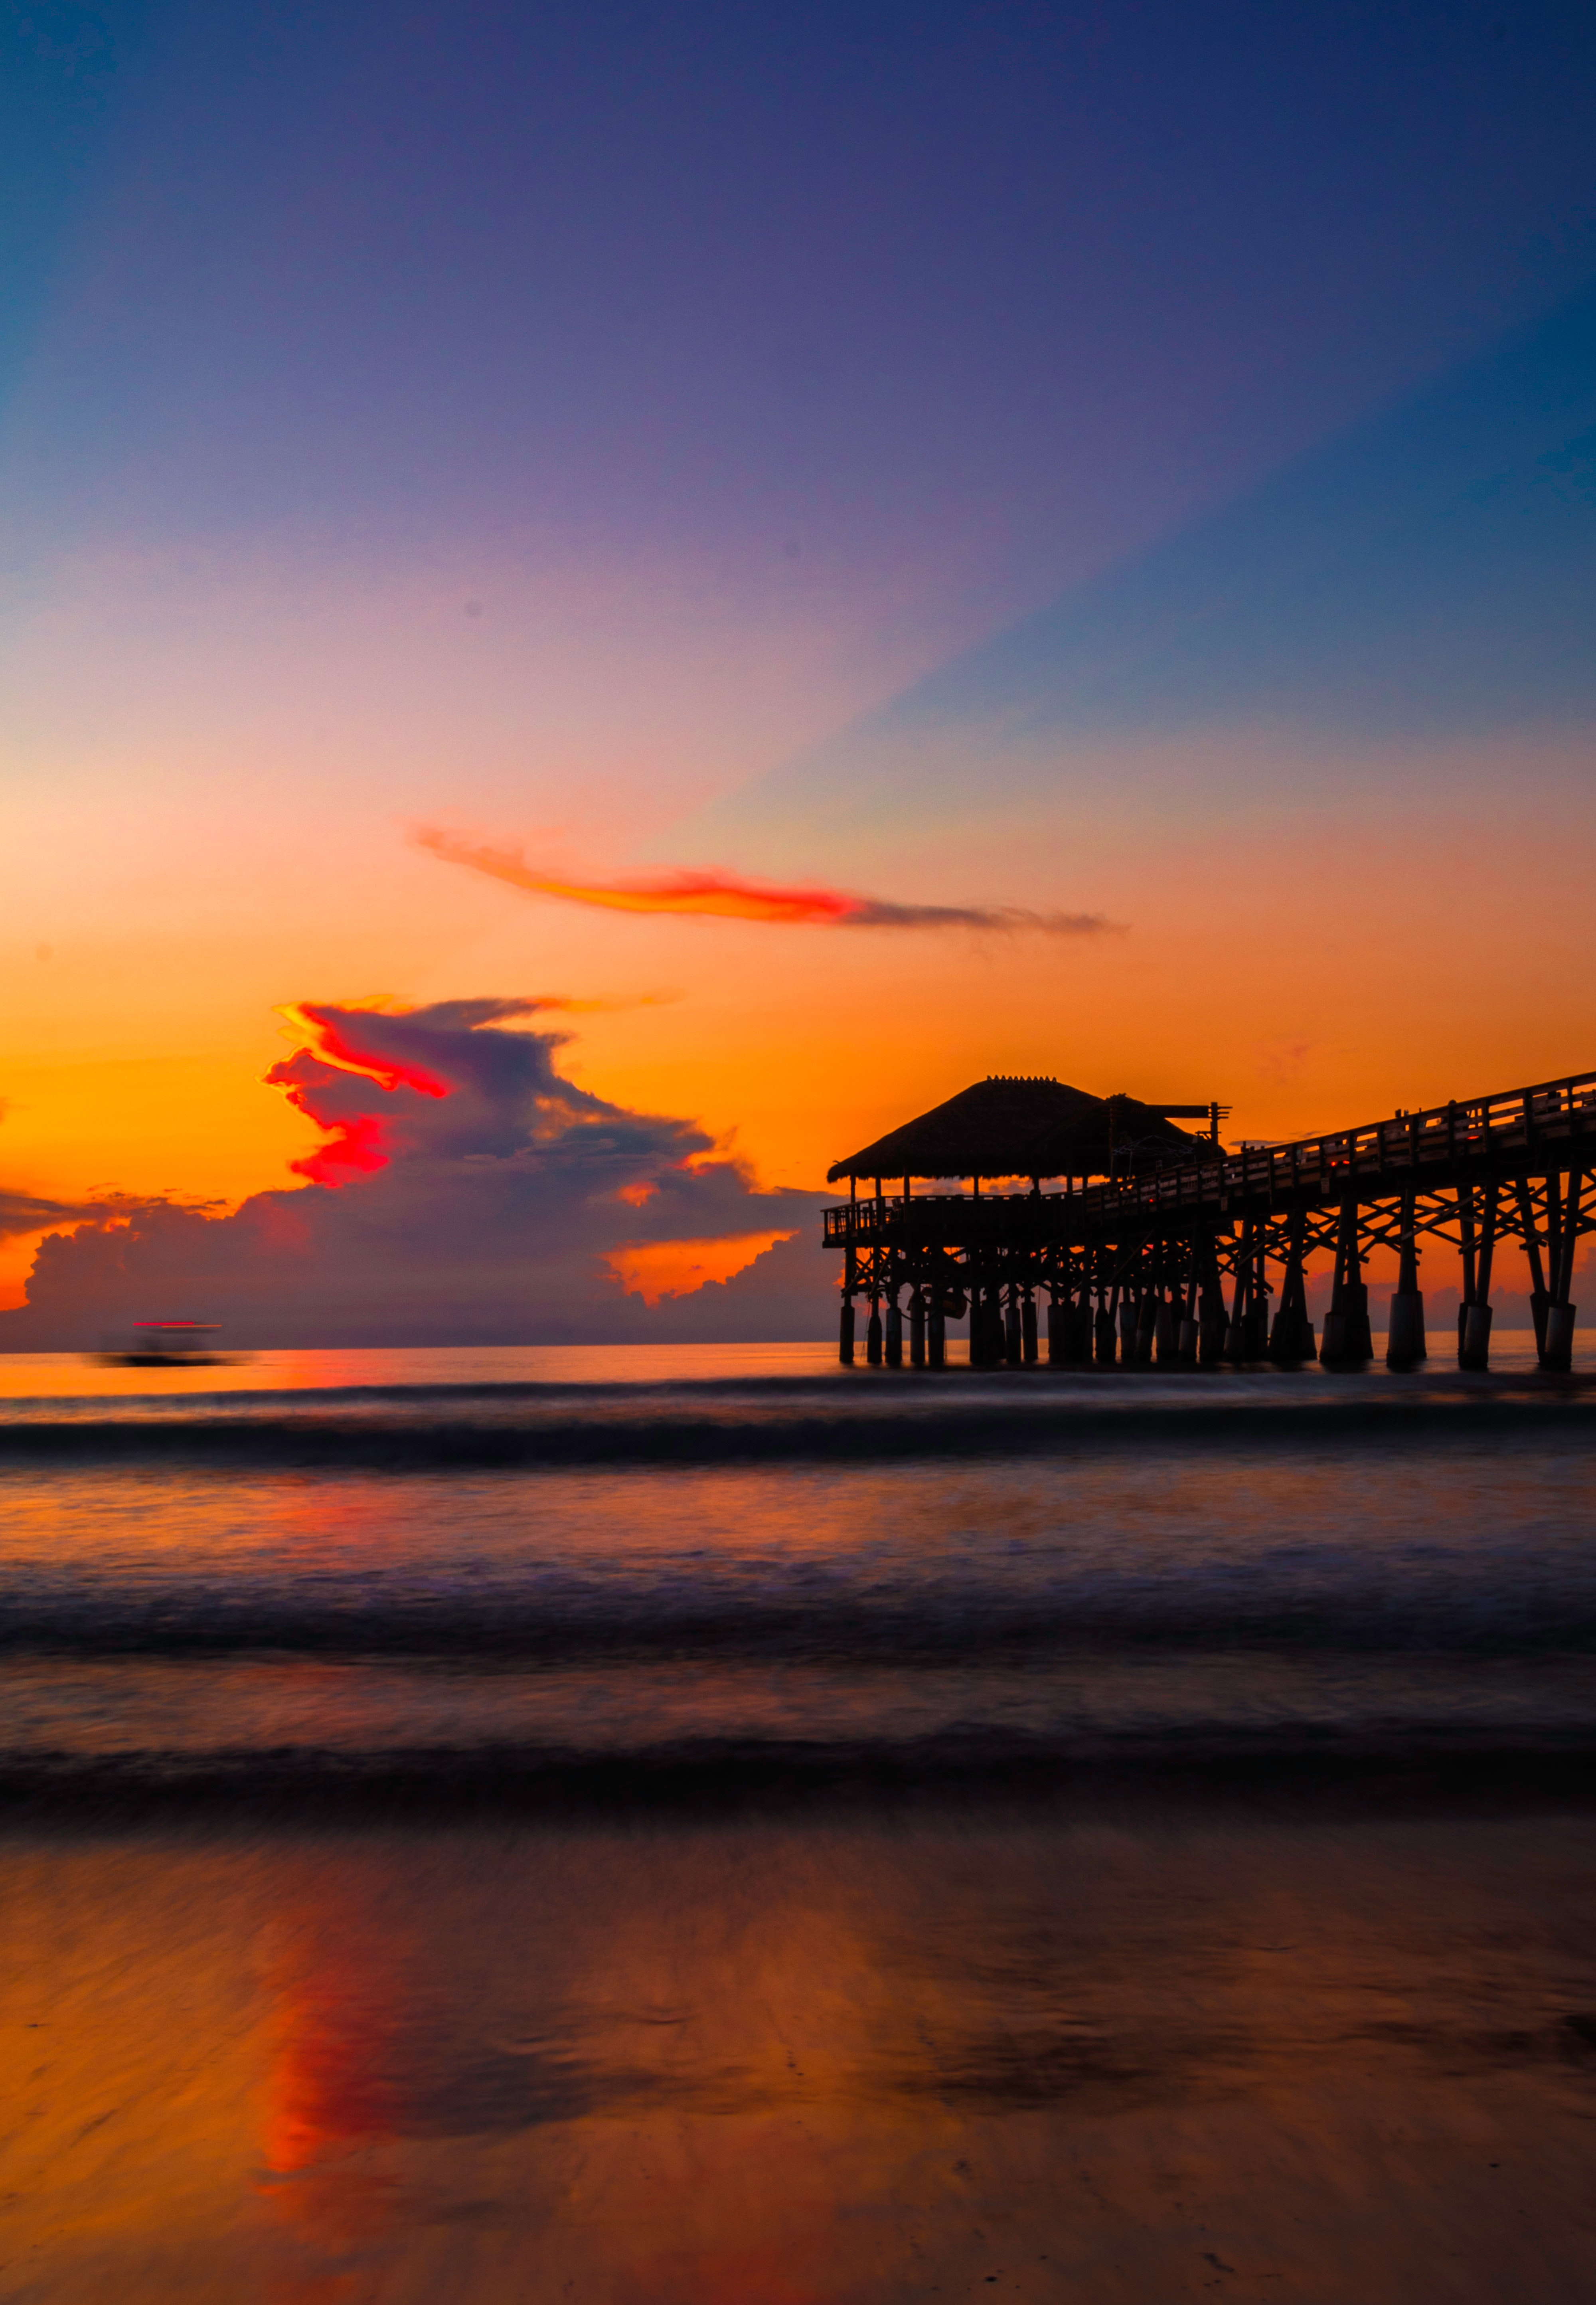 Photography of a Dock During Sunset, Afterglow, Peaceful, Water, Tranquil, HQ Photo